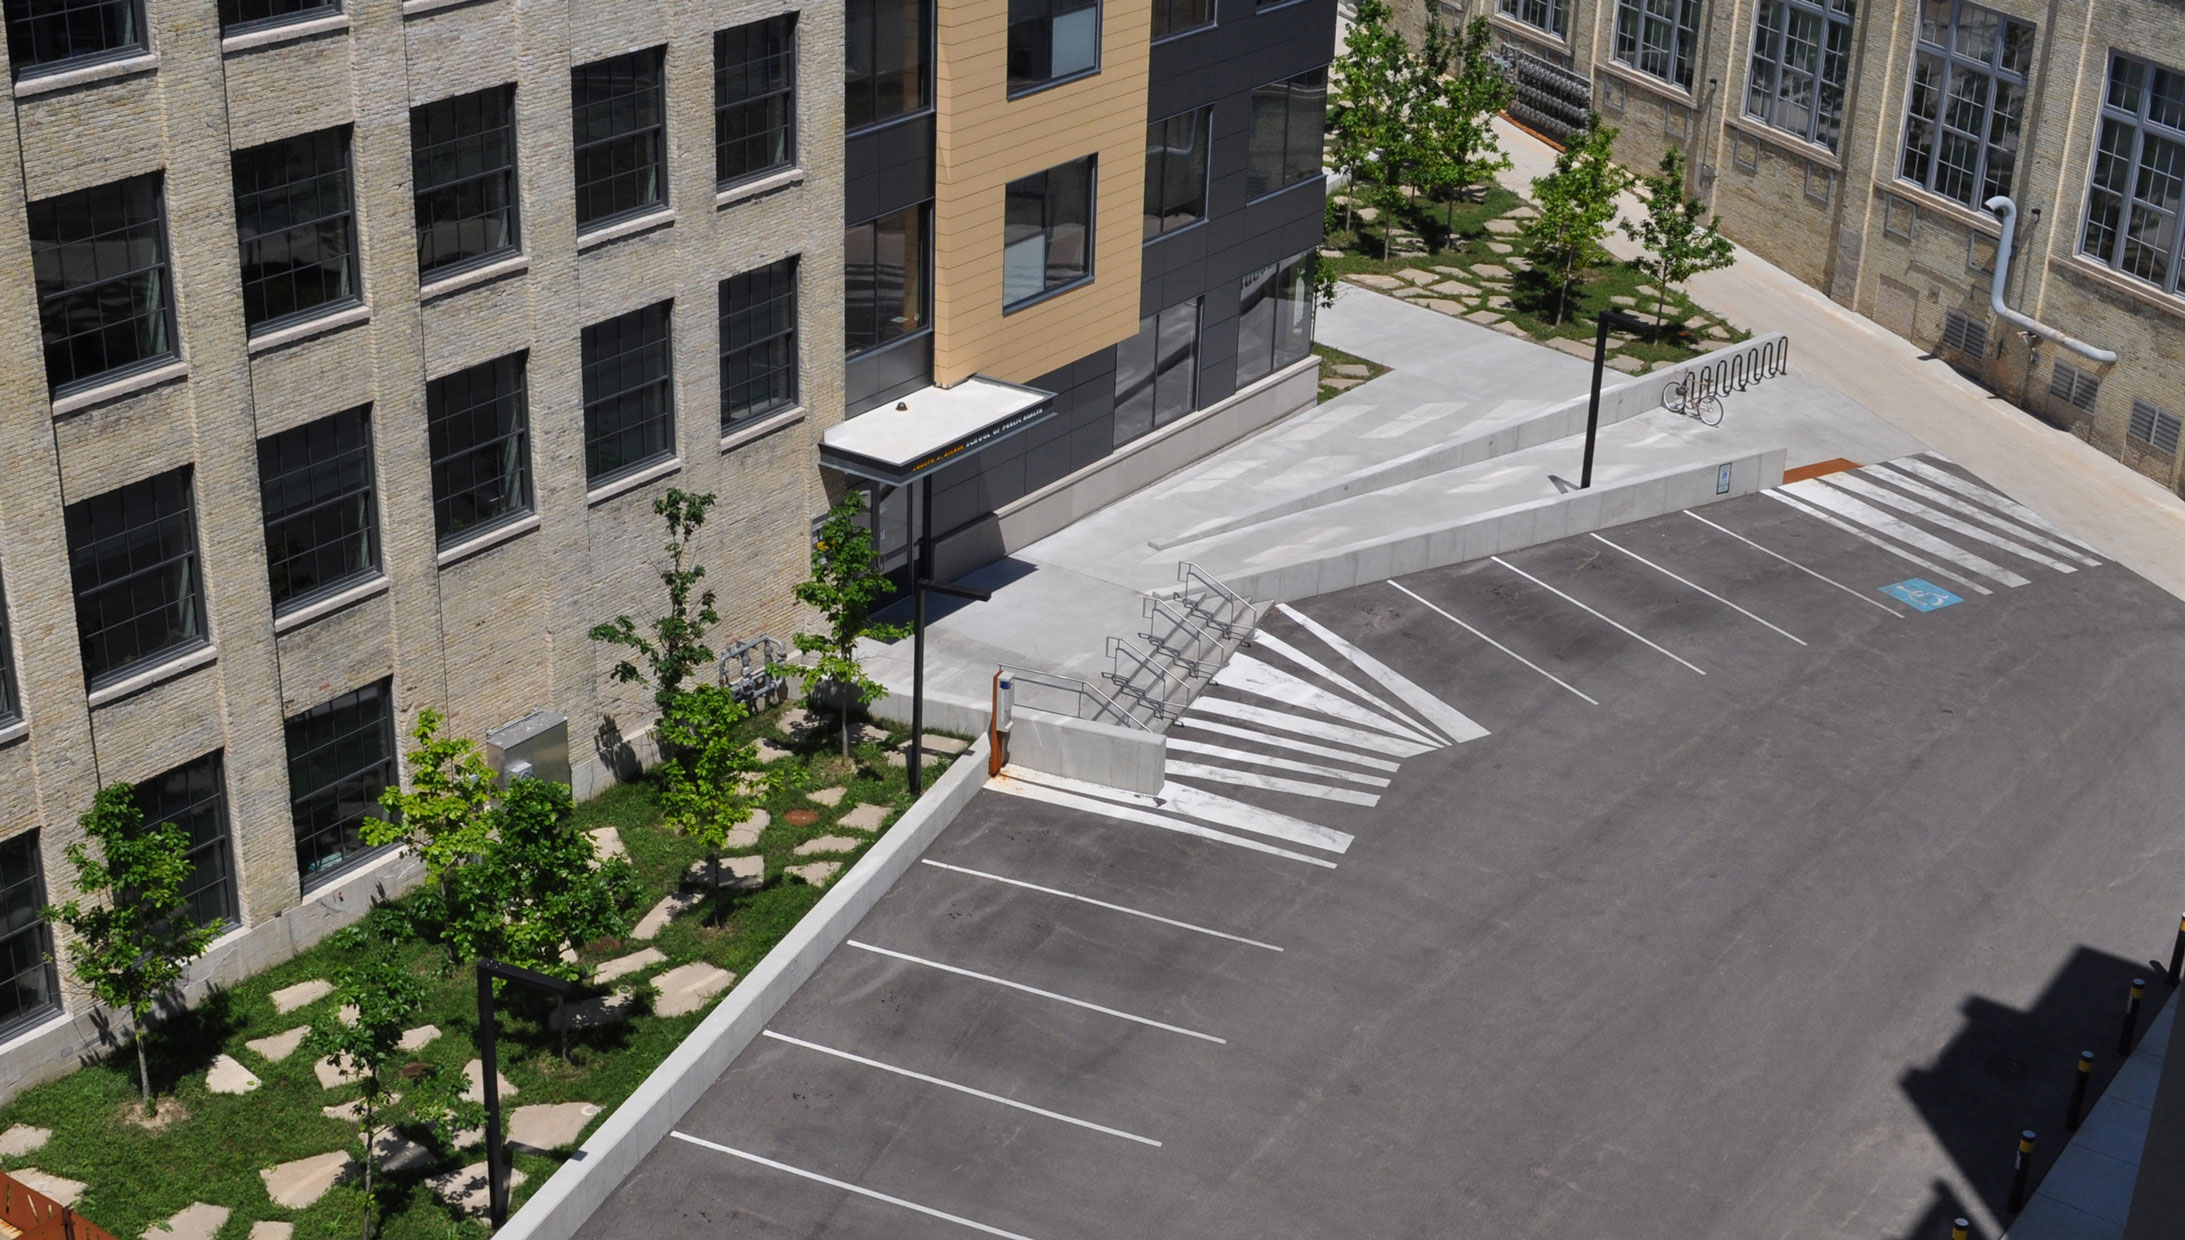 LEVERAGING THE MUNDANE: Required accessible ramps, parking spaces and stripes are reimagined to create a dynamic landscape forecourt and series of occupiable sloping terraces.